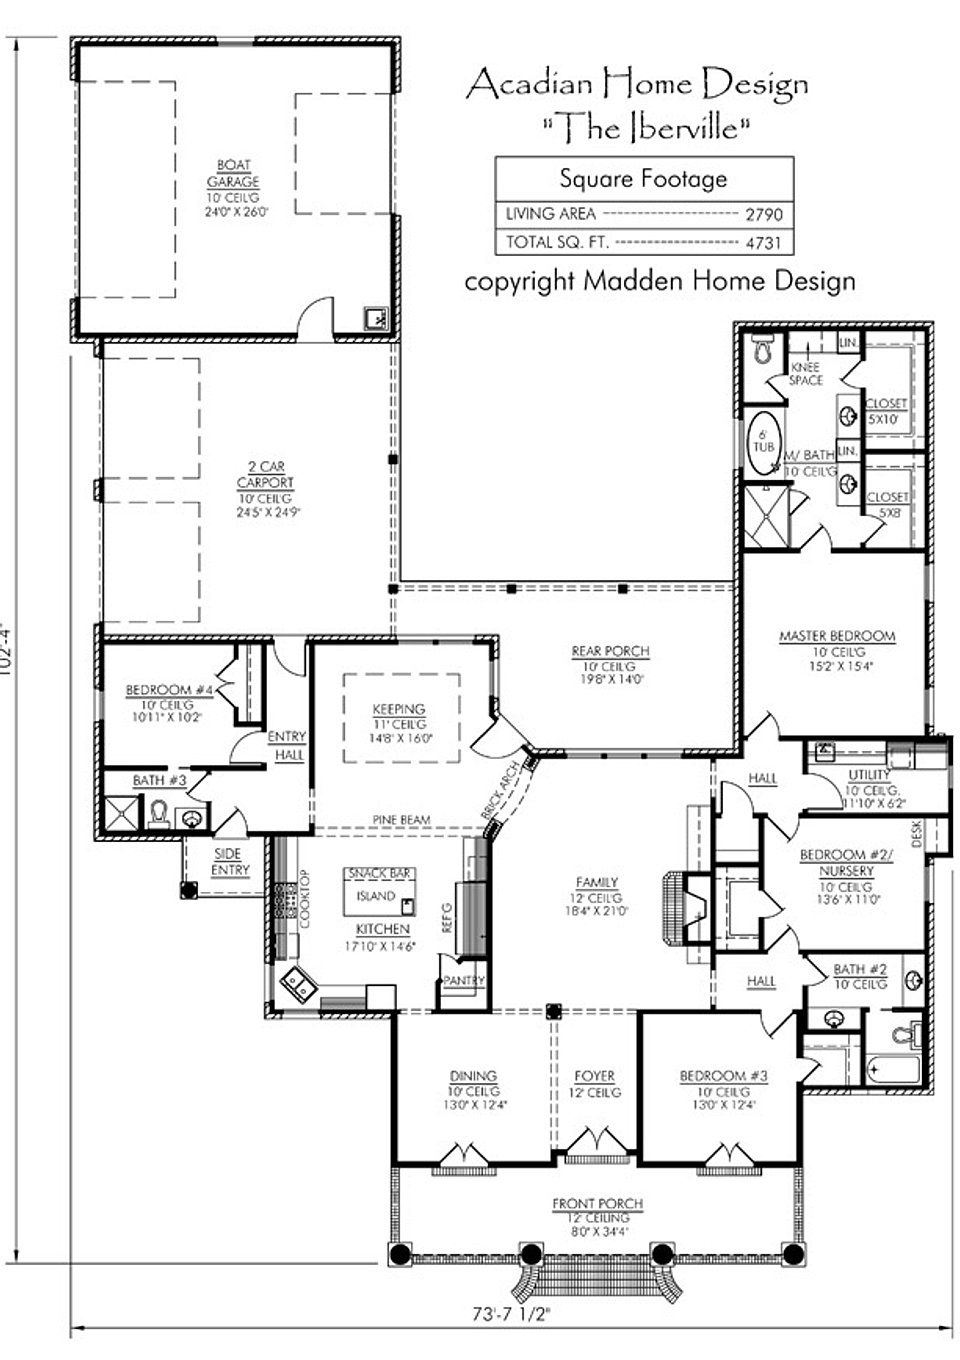 Madden home design the iberville for Madden house plans